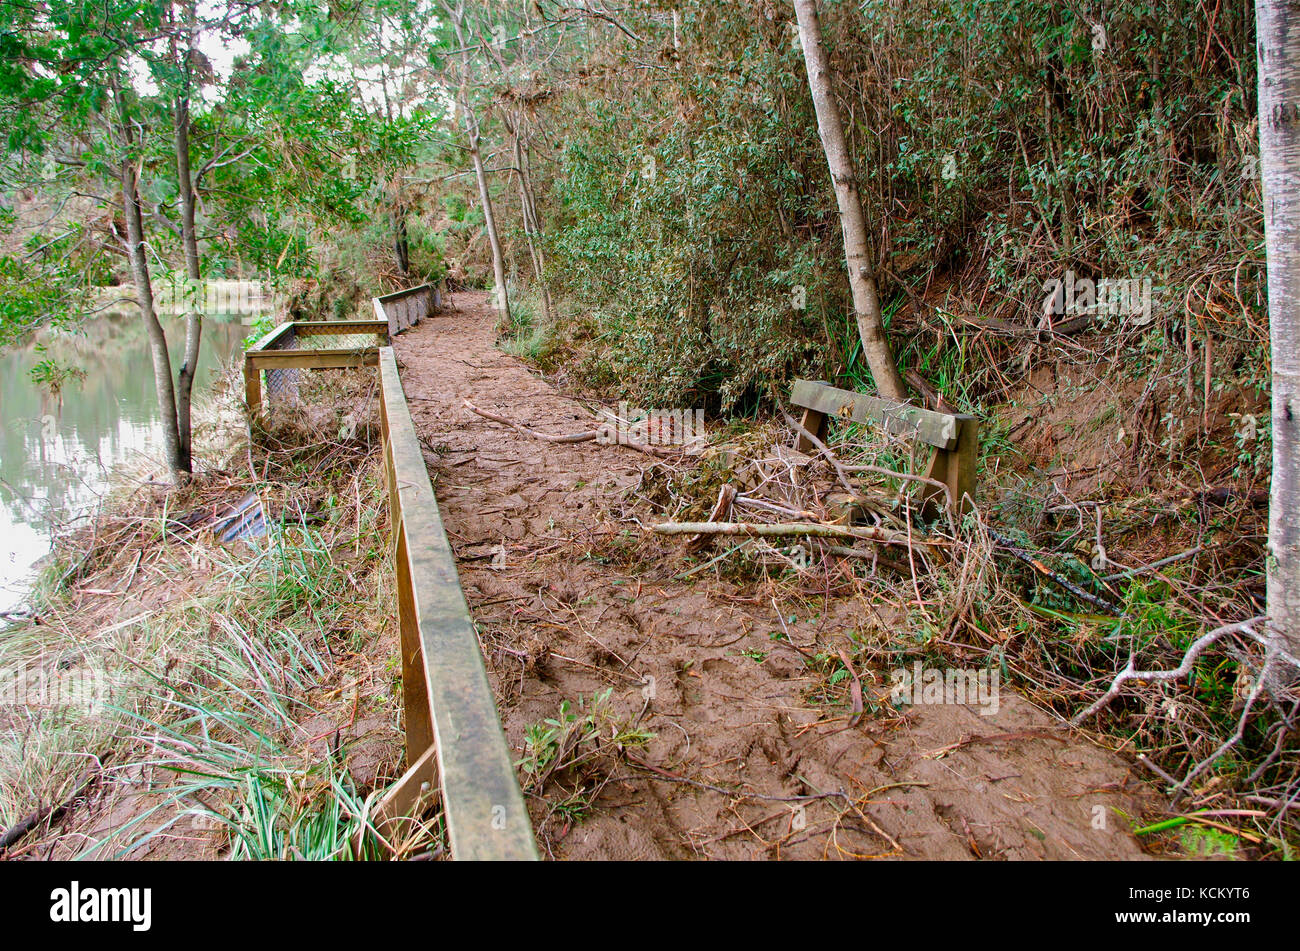 Flood debris piled up on the damaged Platypus Walk on the bank of the Mersey River. Warrawee Forest Reserve, Latrobe, - Stock Image